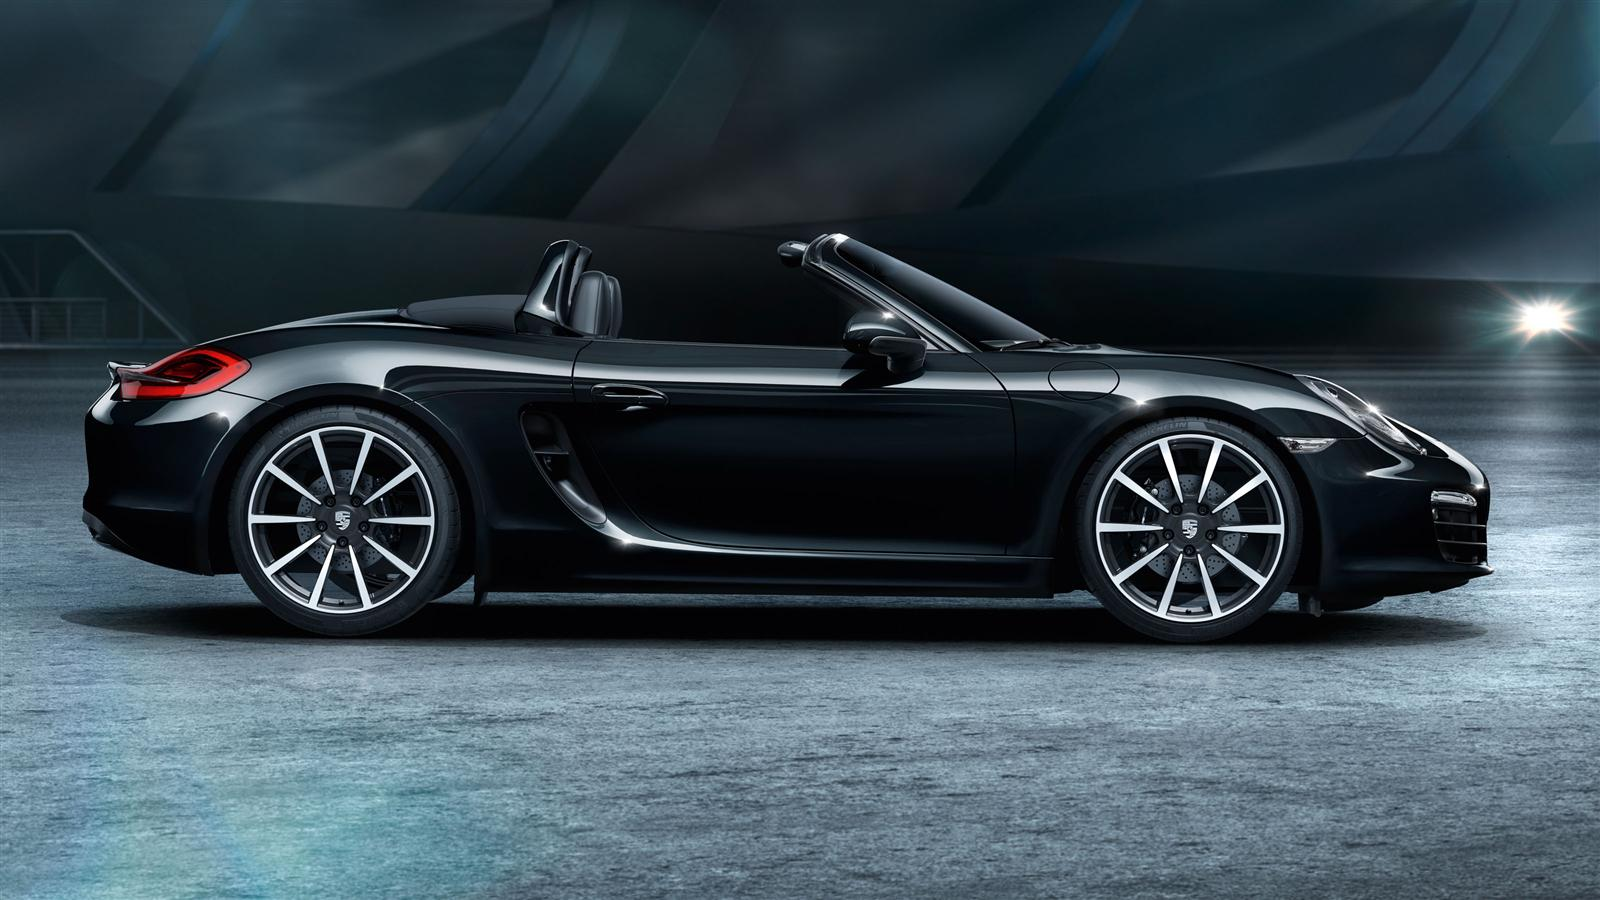 2016 porsche boxster black edition review top speed. Black Bedroom Furniture Sets. Home Design Ideas